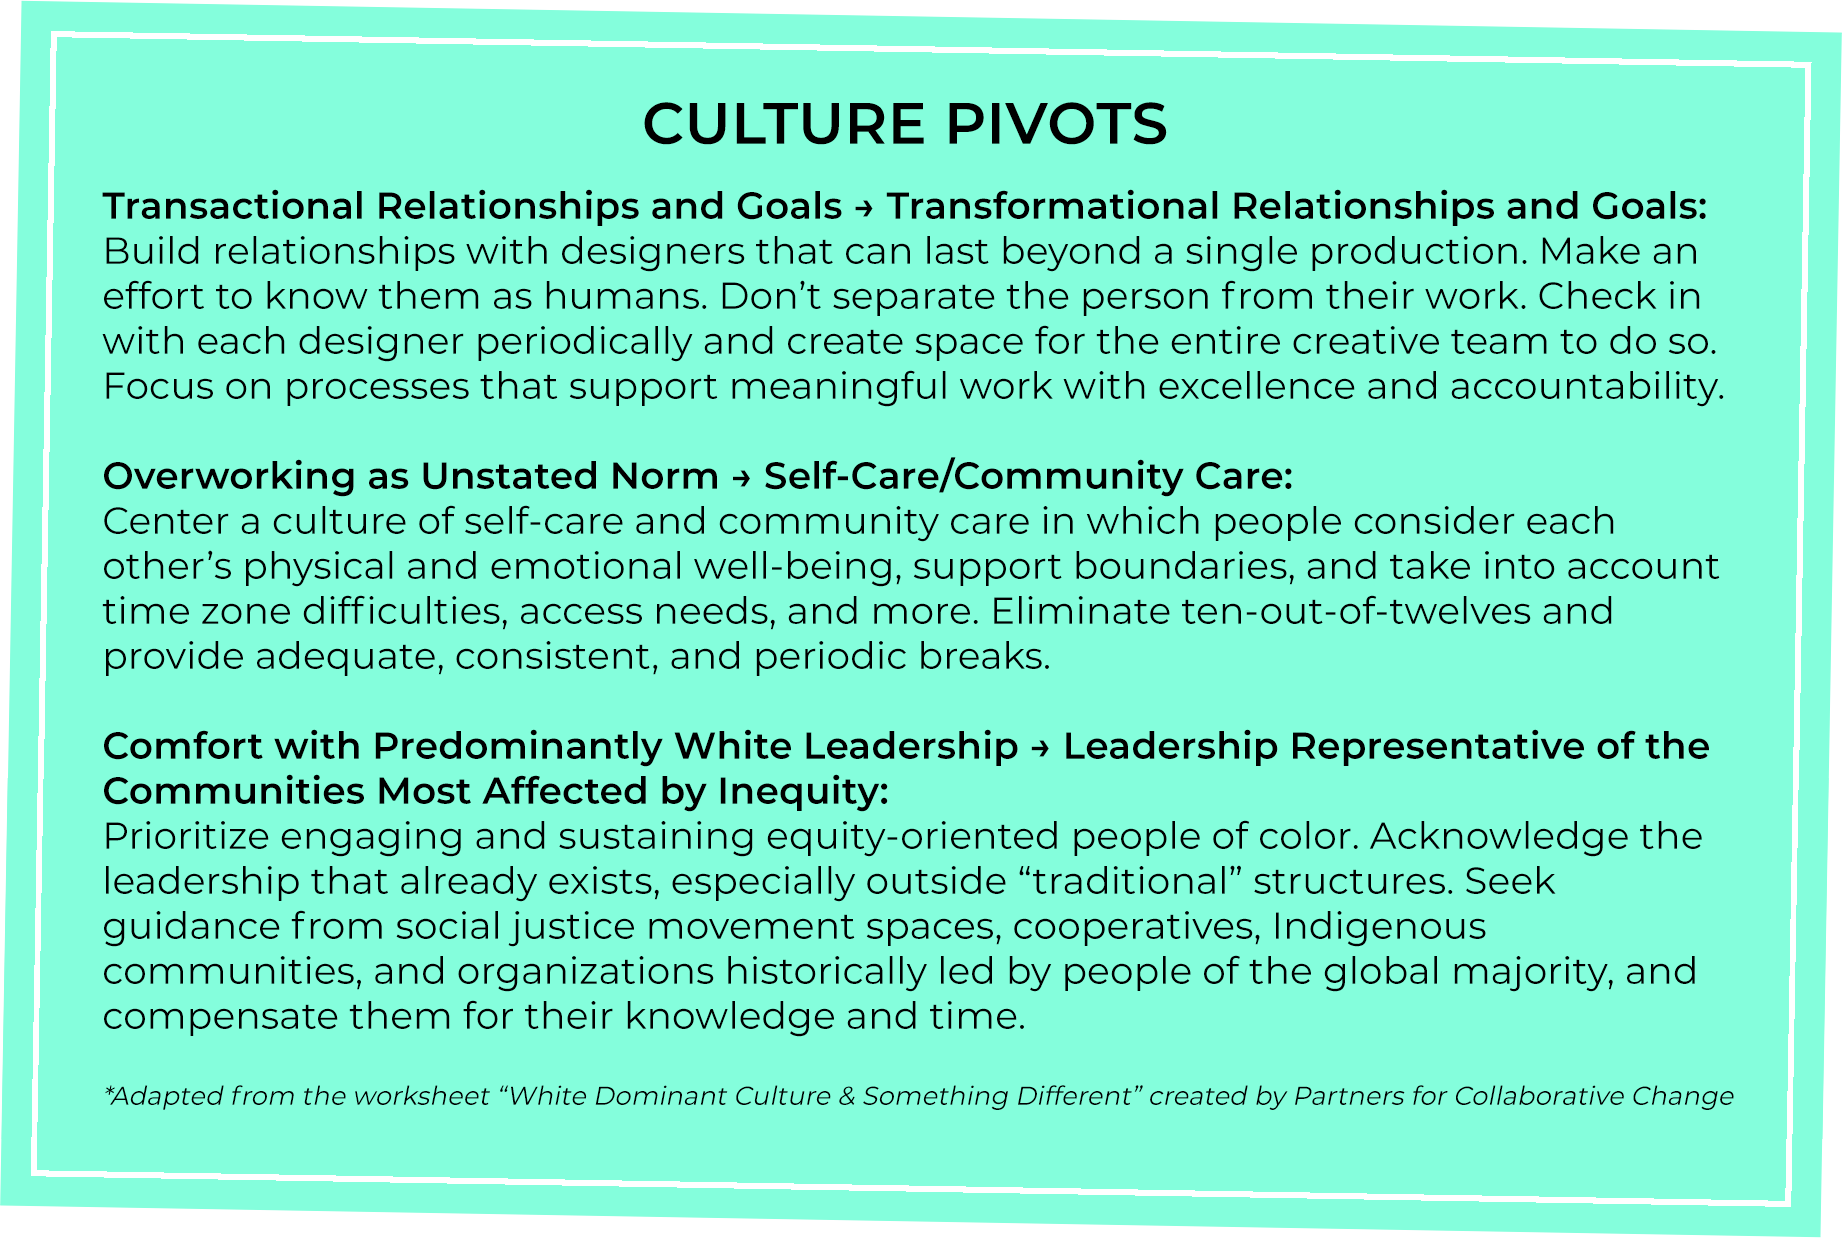 Culture Pivots Transactional Relationships and Goals > Transformational Relationships and Goals Overworking as Unstated Norm > Self-Care/Community Care Comfort with Predominantly white Leadership > Leadership Representative of the Communities Most  affected by Inequity